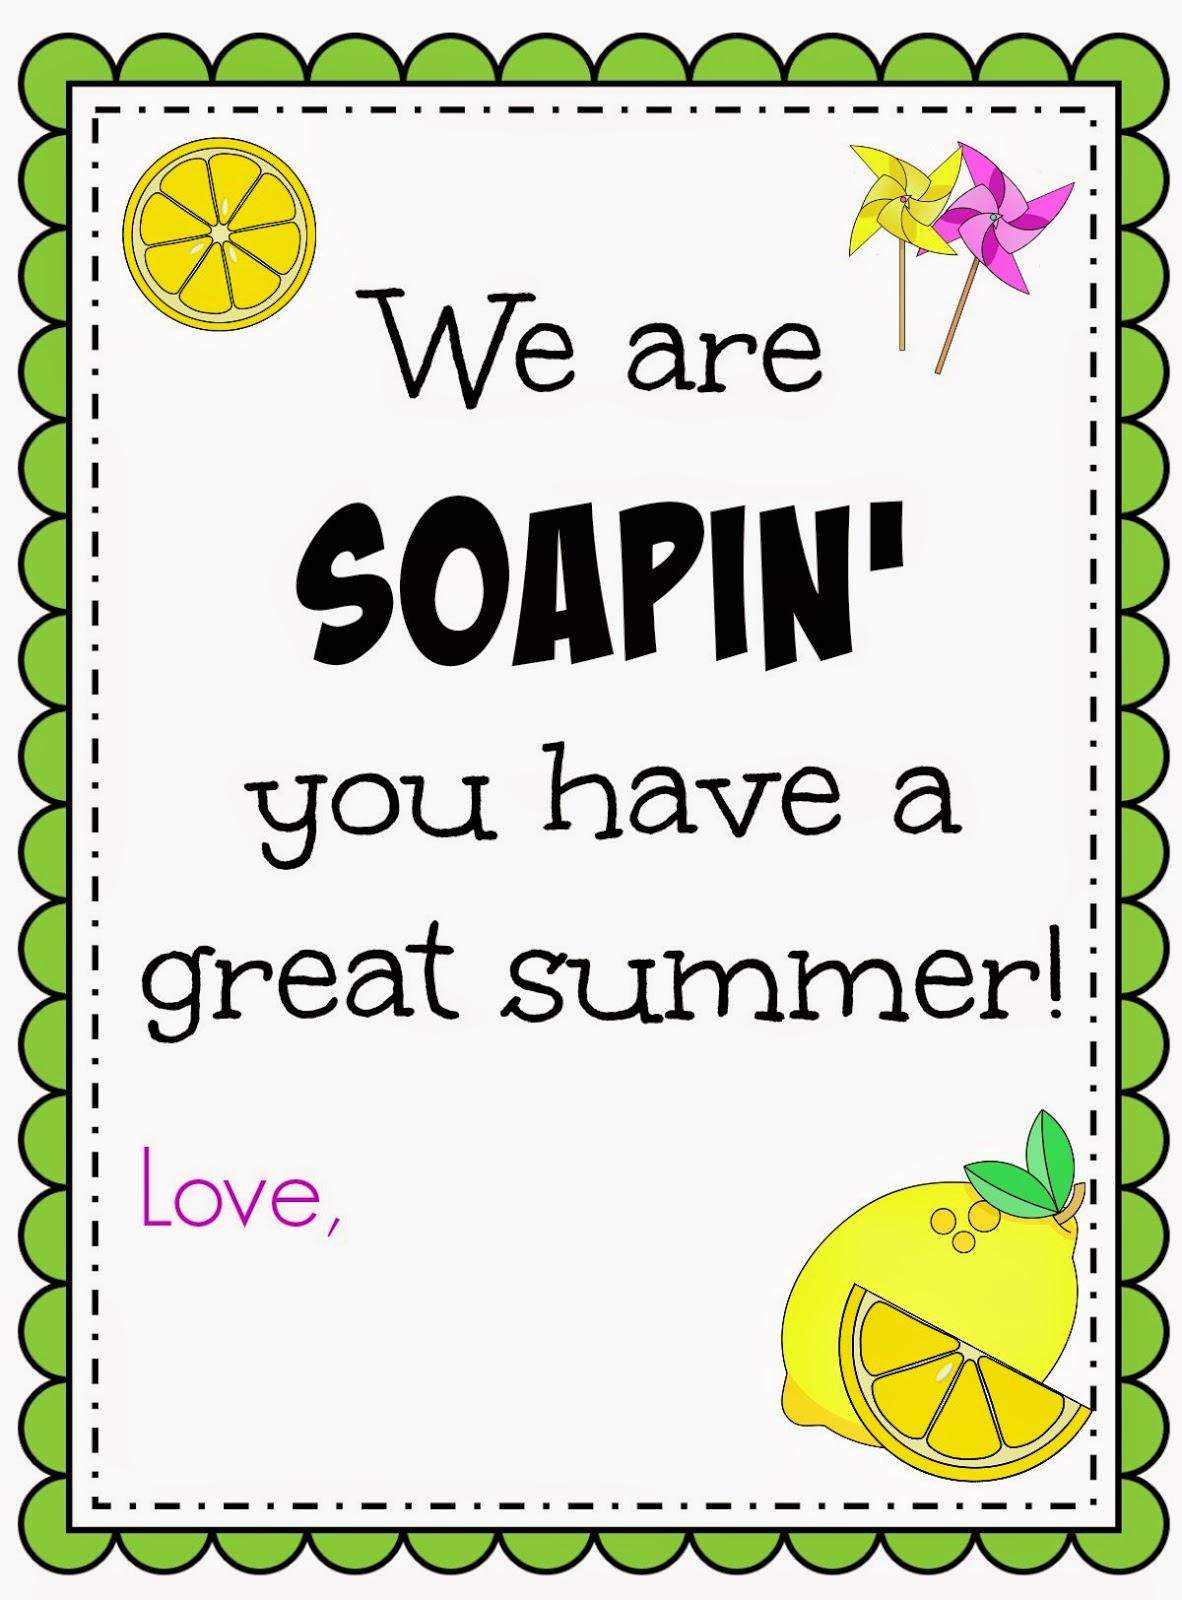 Zucchini summer teacher gift soapin you have a great summer soapin you have great summer teacher gifts school staff gift coach gift negle Gallery